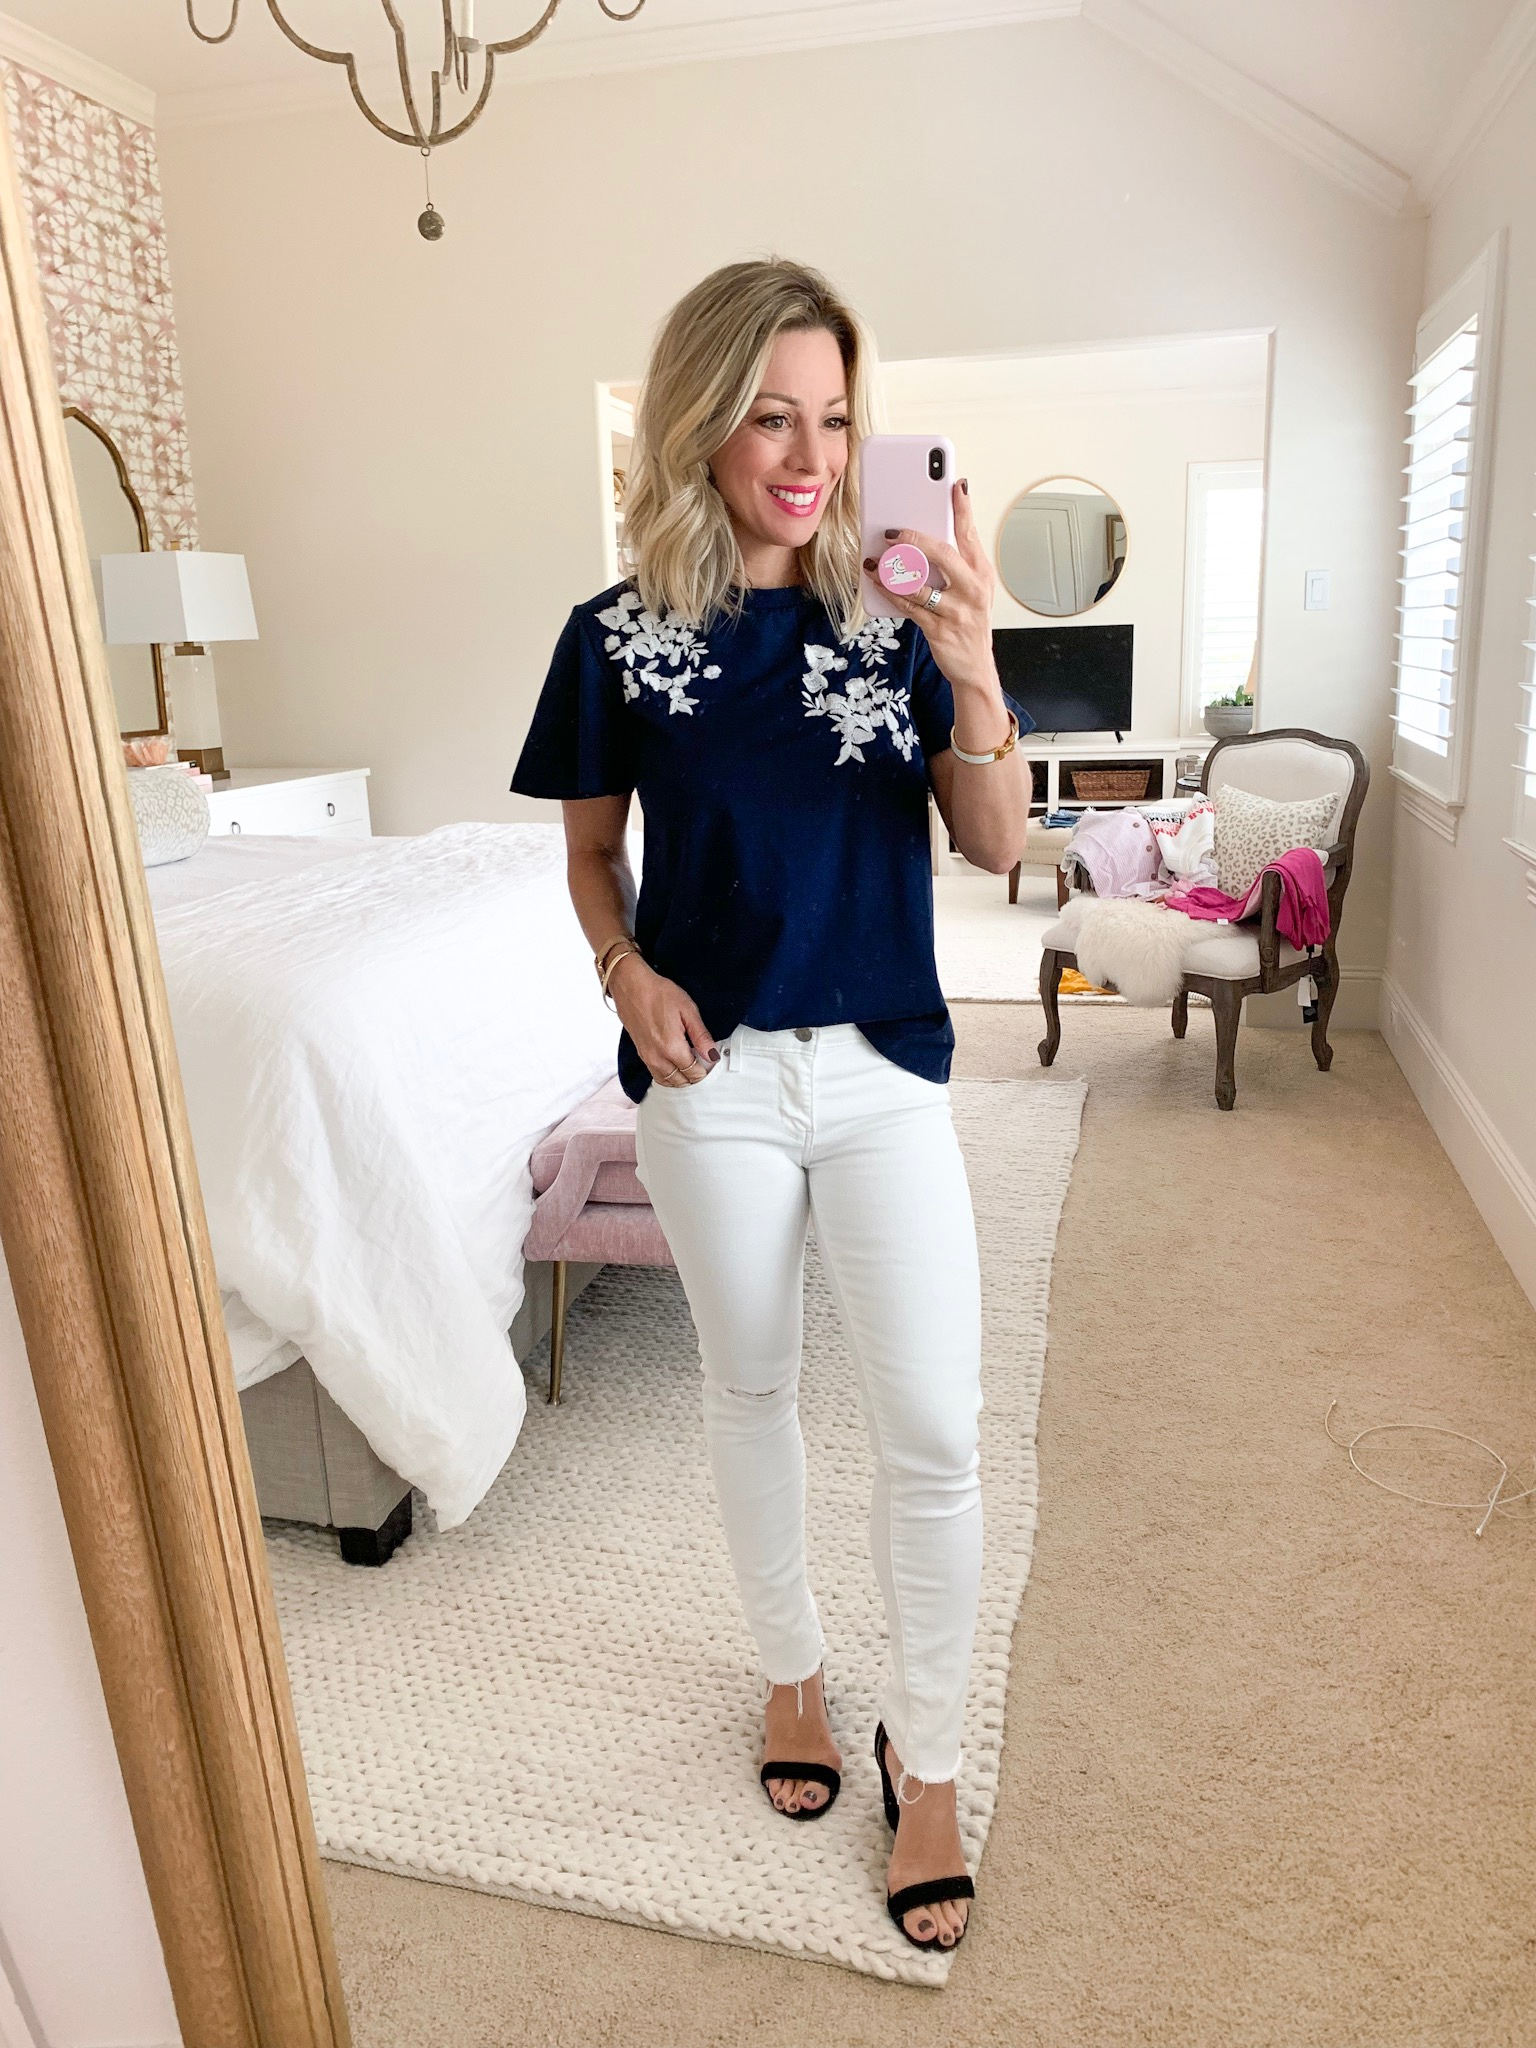 484e1871a0c Embroidered Flutter Sleeve Top • White Jeans • Slim Wedge Sandals